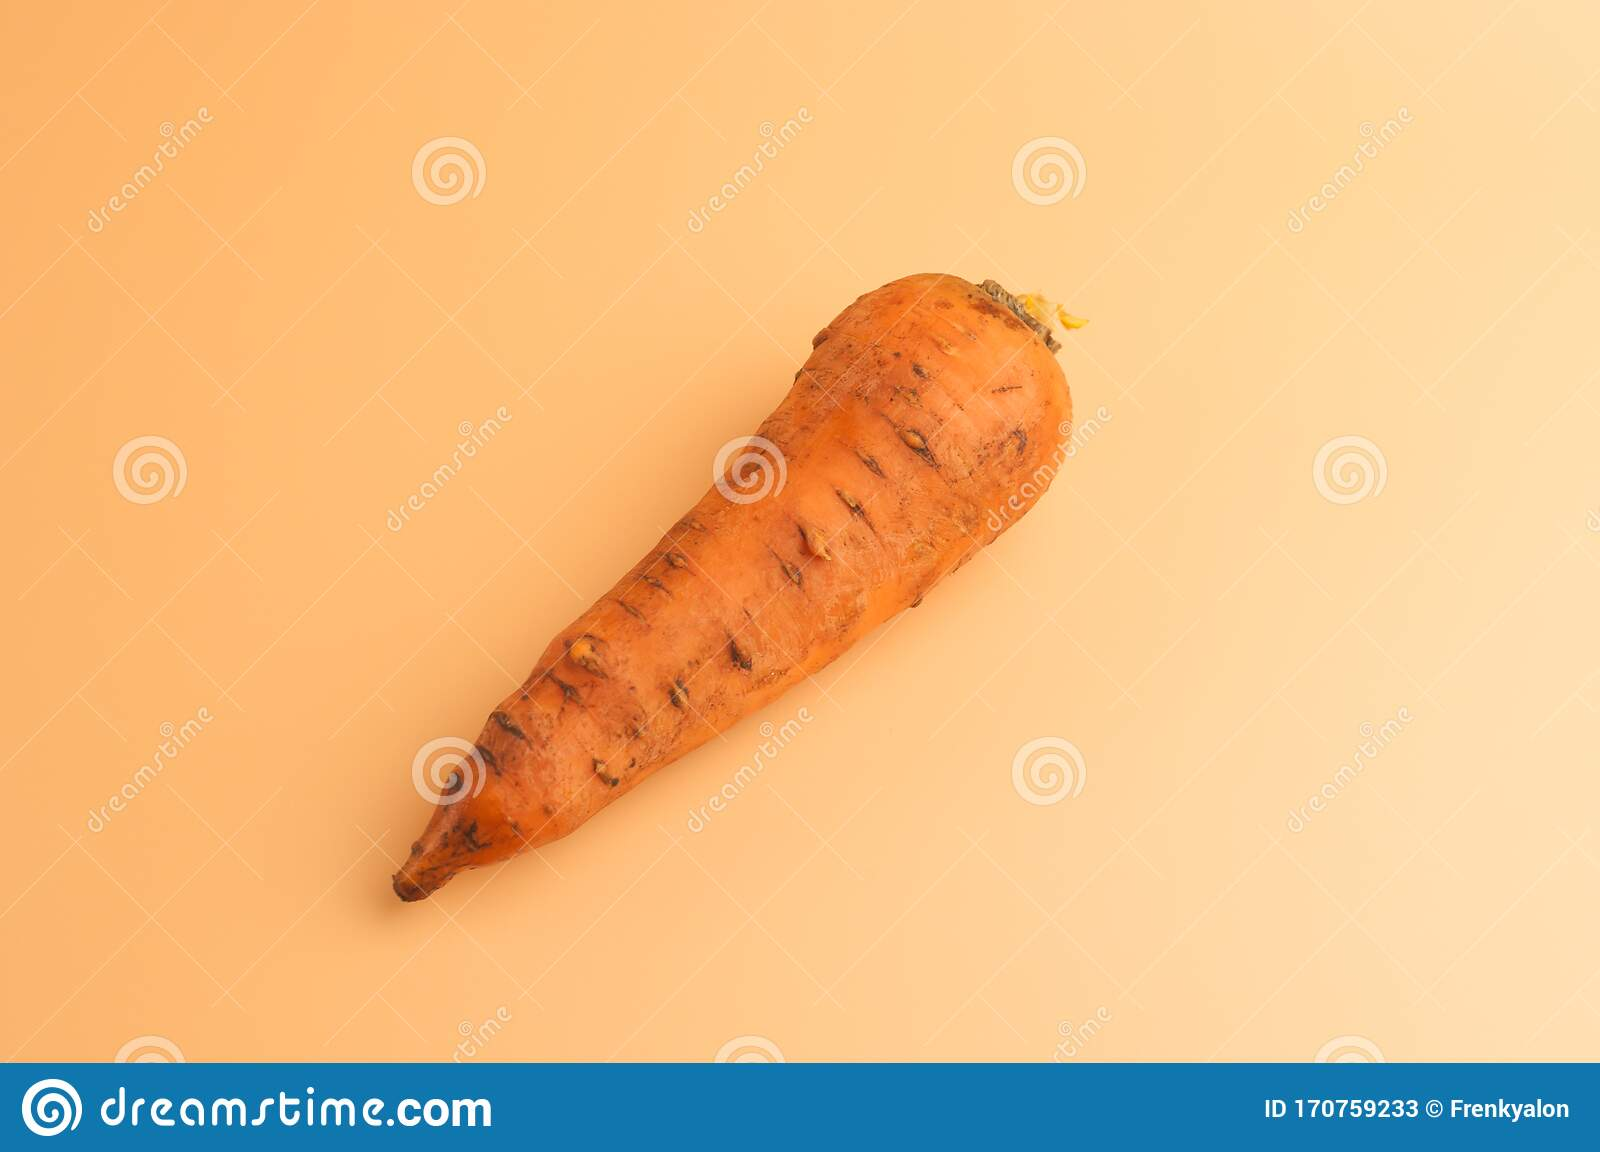 Organic Carrot In The Mud On Beige Background Not Peeled Sweet Carrots On The Surface Young Carrots From Garden In Minimalist Stock Image Image Of Lifestyle Green 170759233